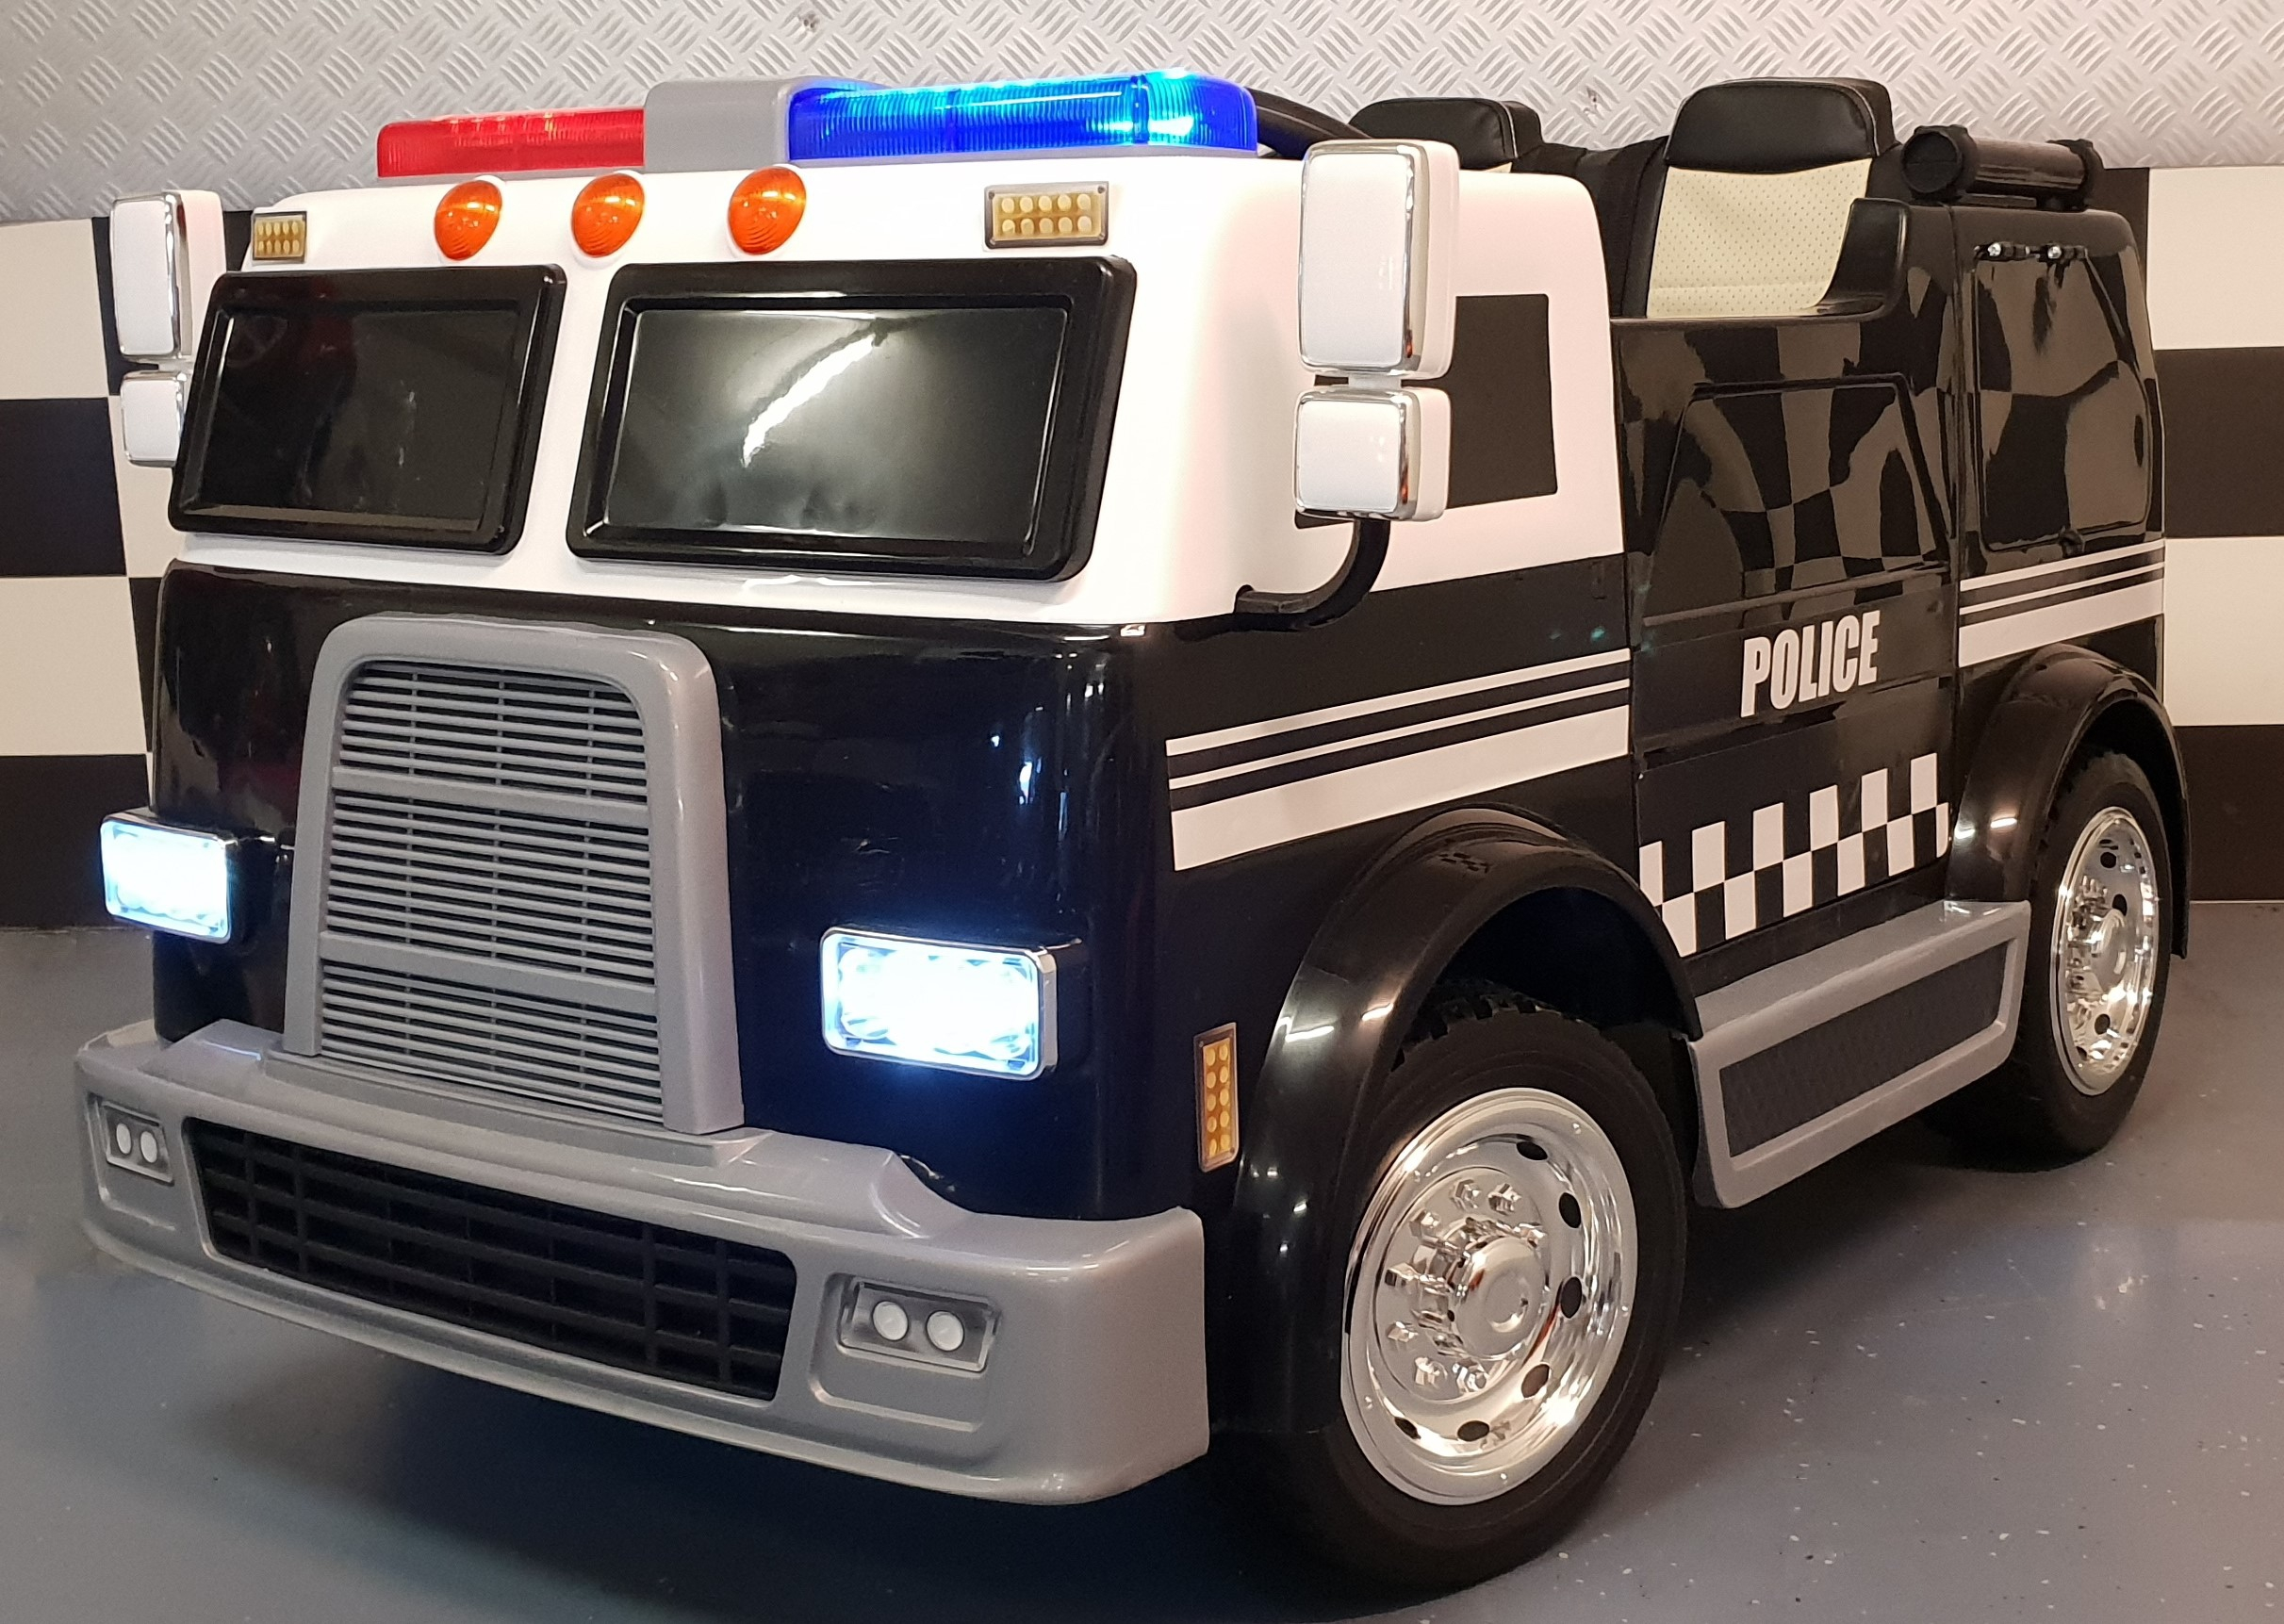 politietruck elektrische politie kinderauto 12 volt met 2. Black Bedroom Furniture Sets. Home Design Ideas